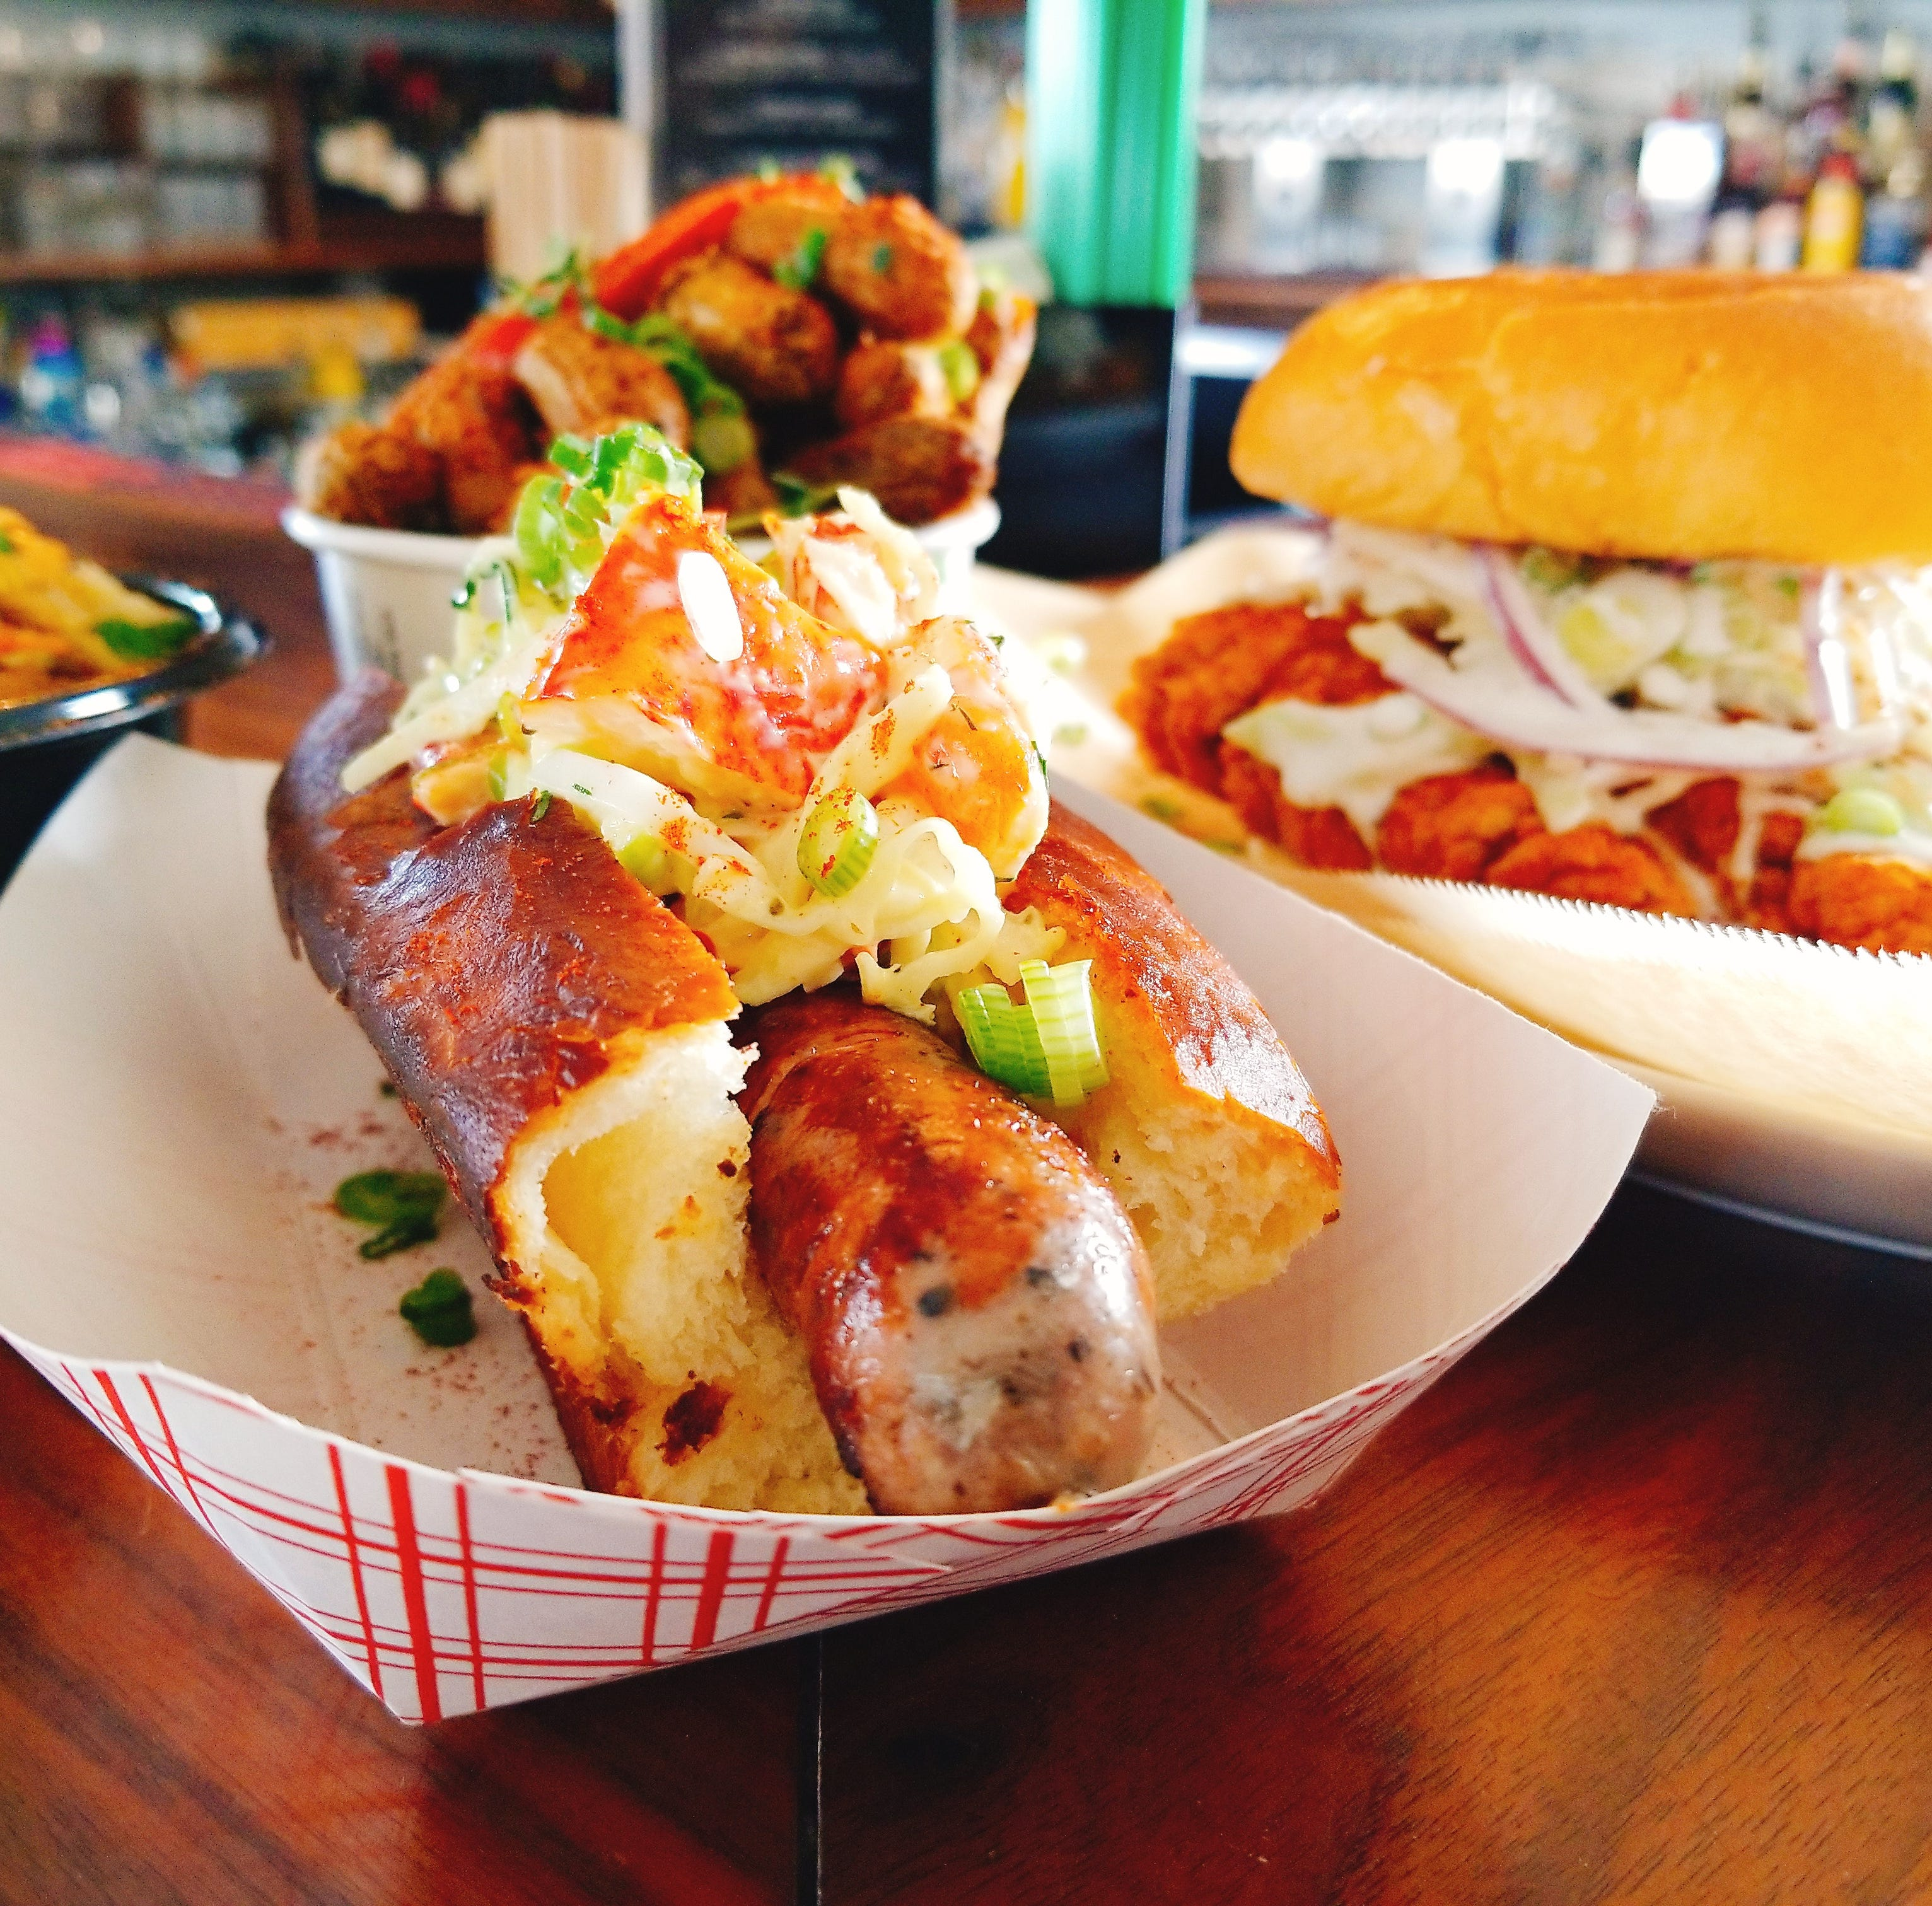 Scrapple hot dogs topped with lobster? Get one while you can